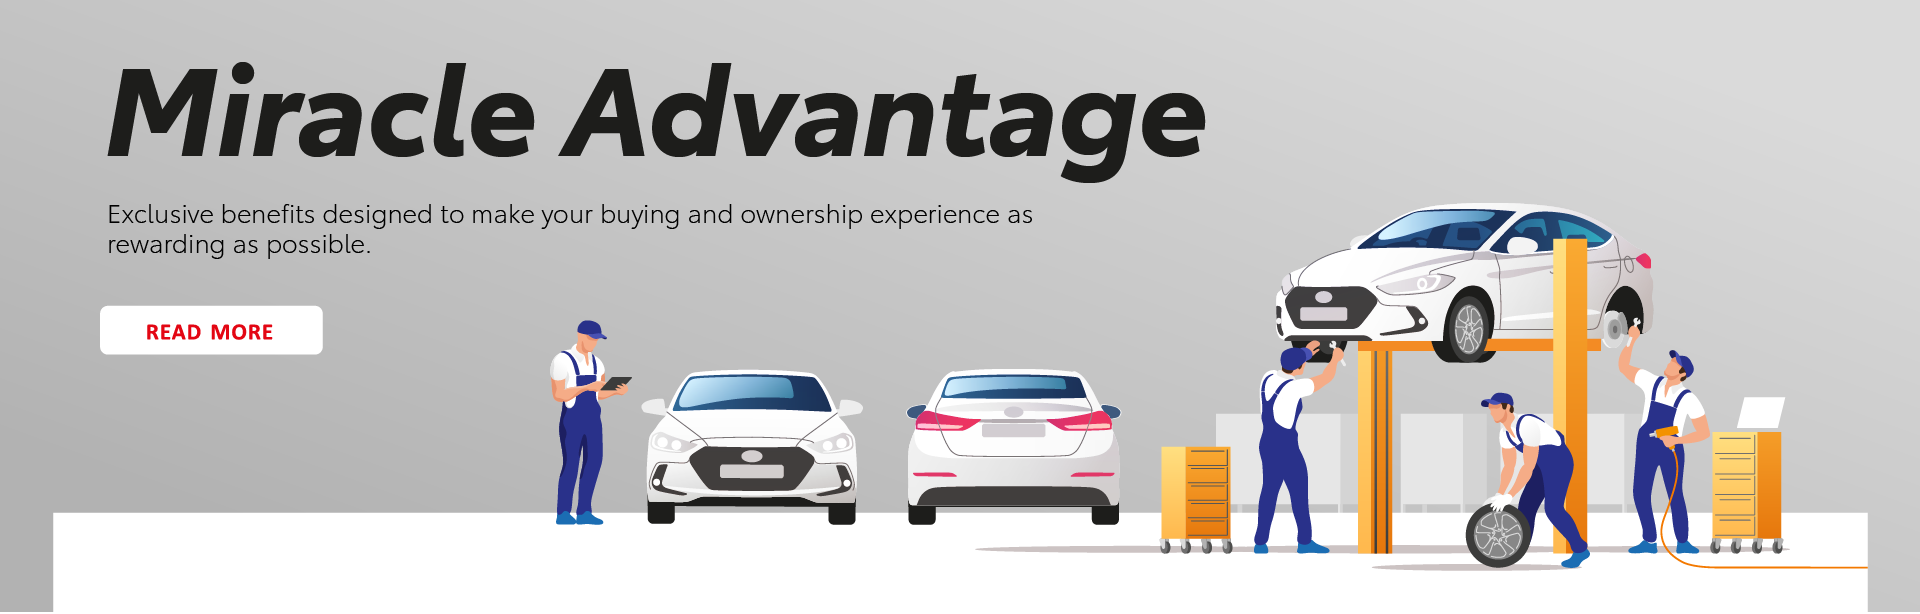 Miracle Advantage Homepage Banner